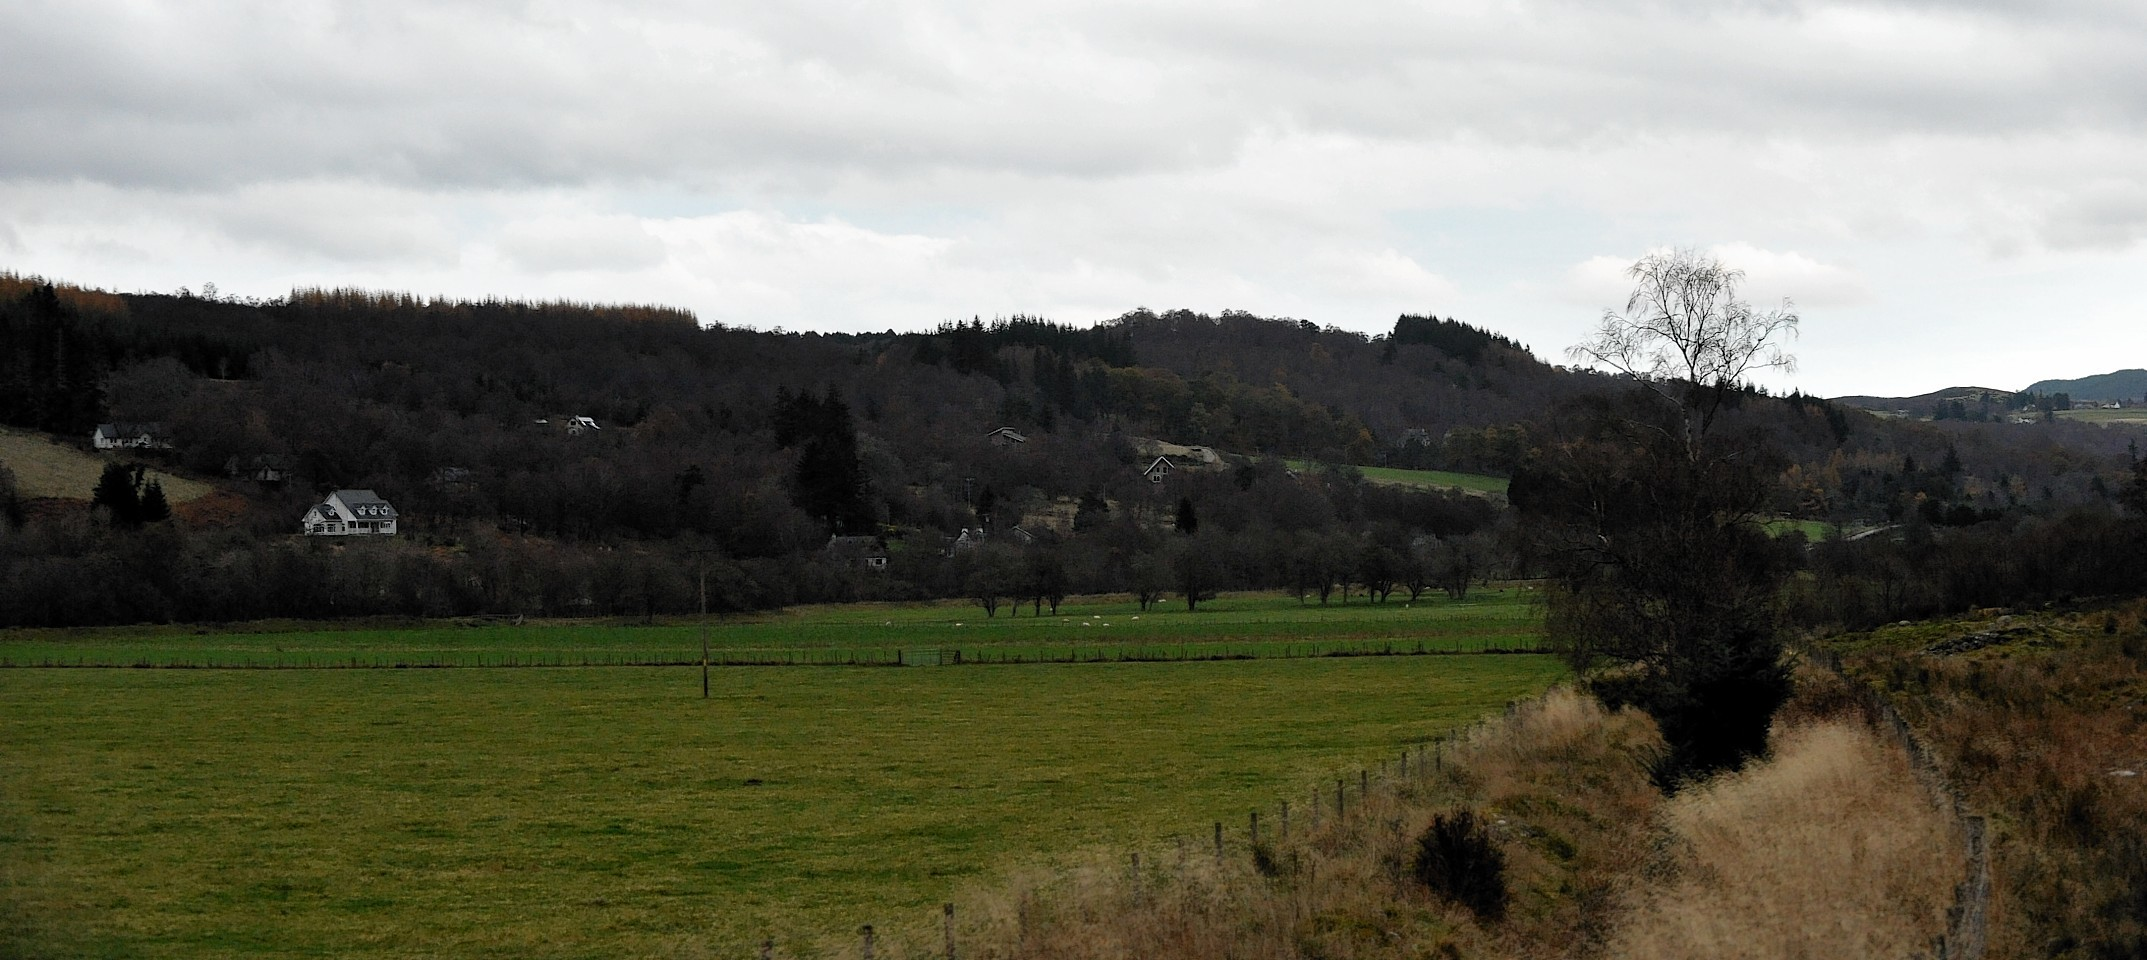 The proposed site of Cnoc an Eas